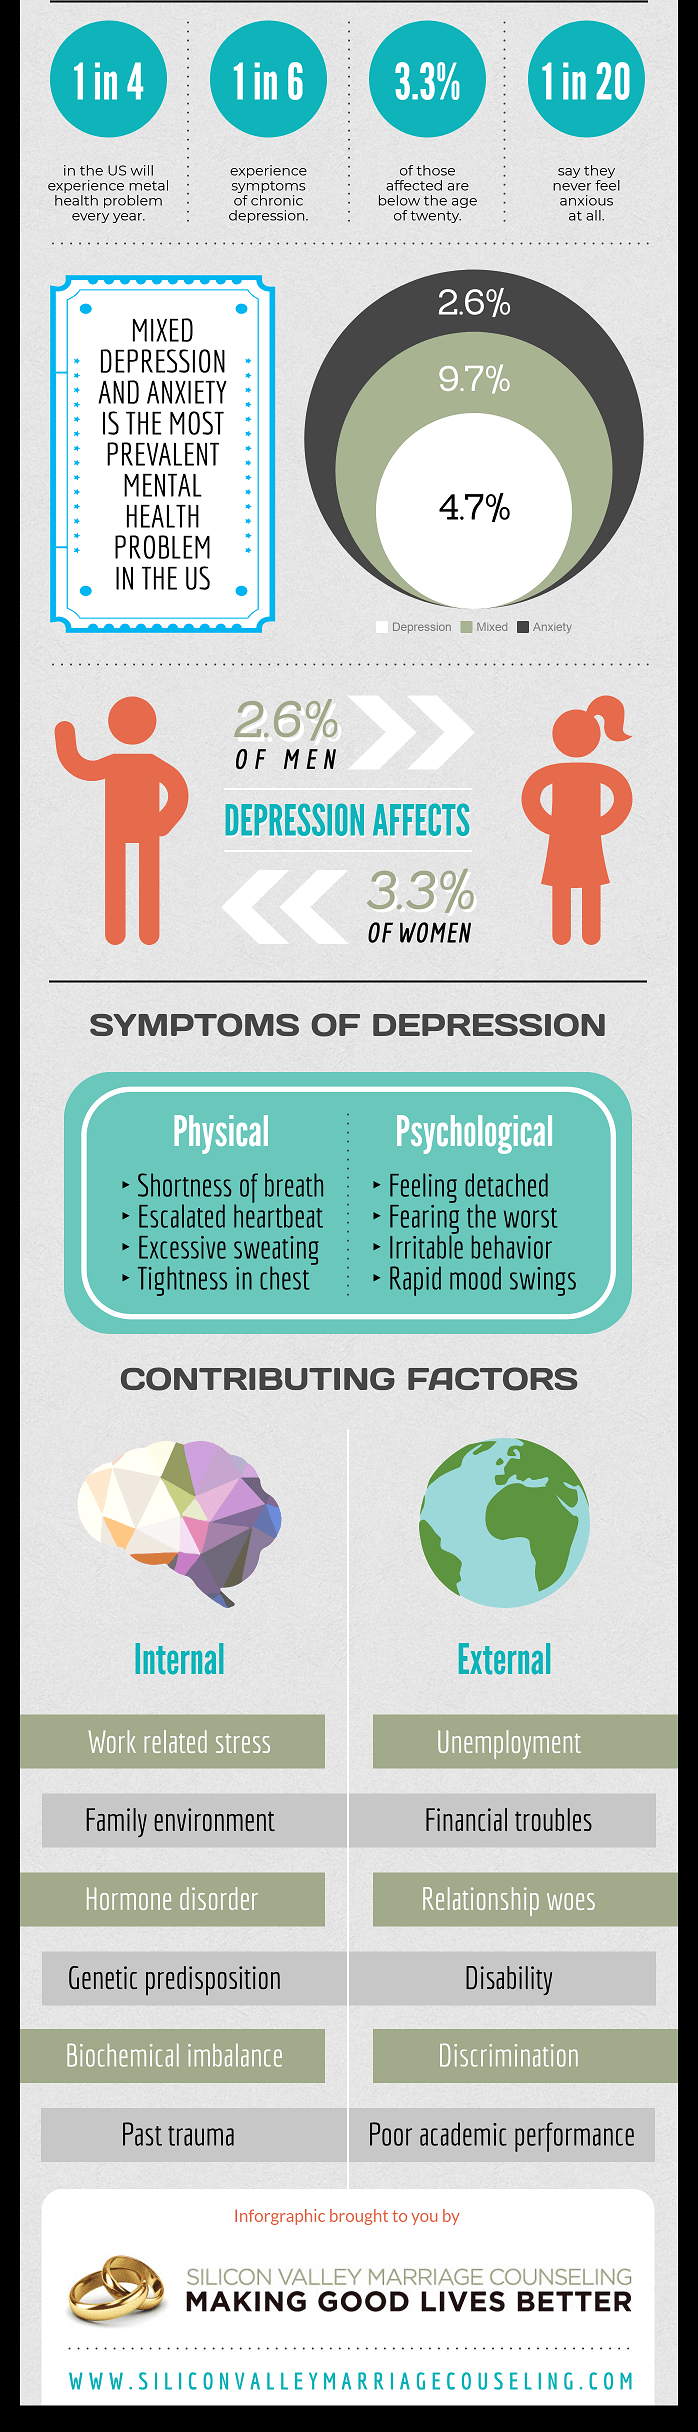 Mixed Depression and anxiety is the most prevalent mental health problem in the US